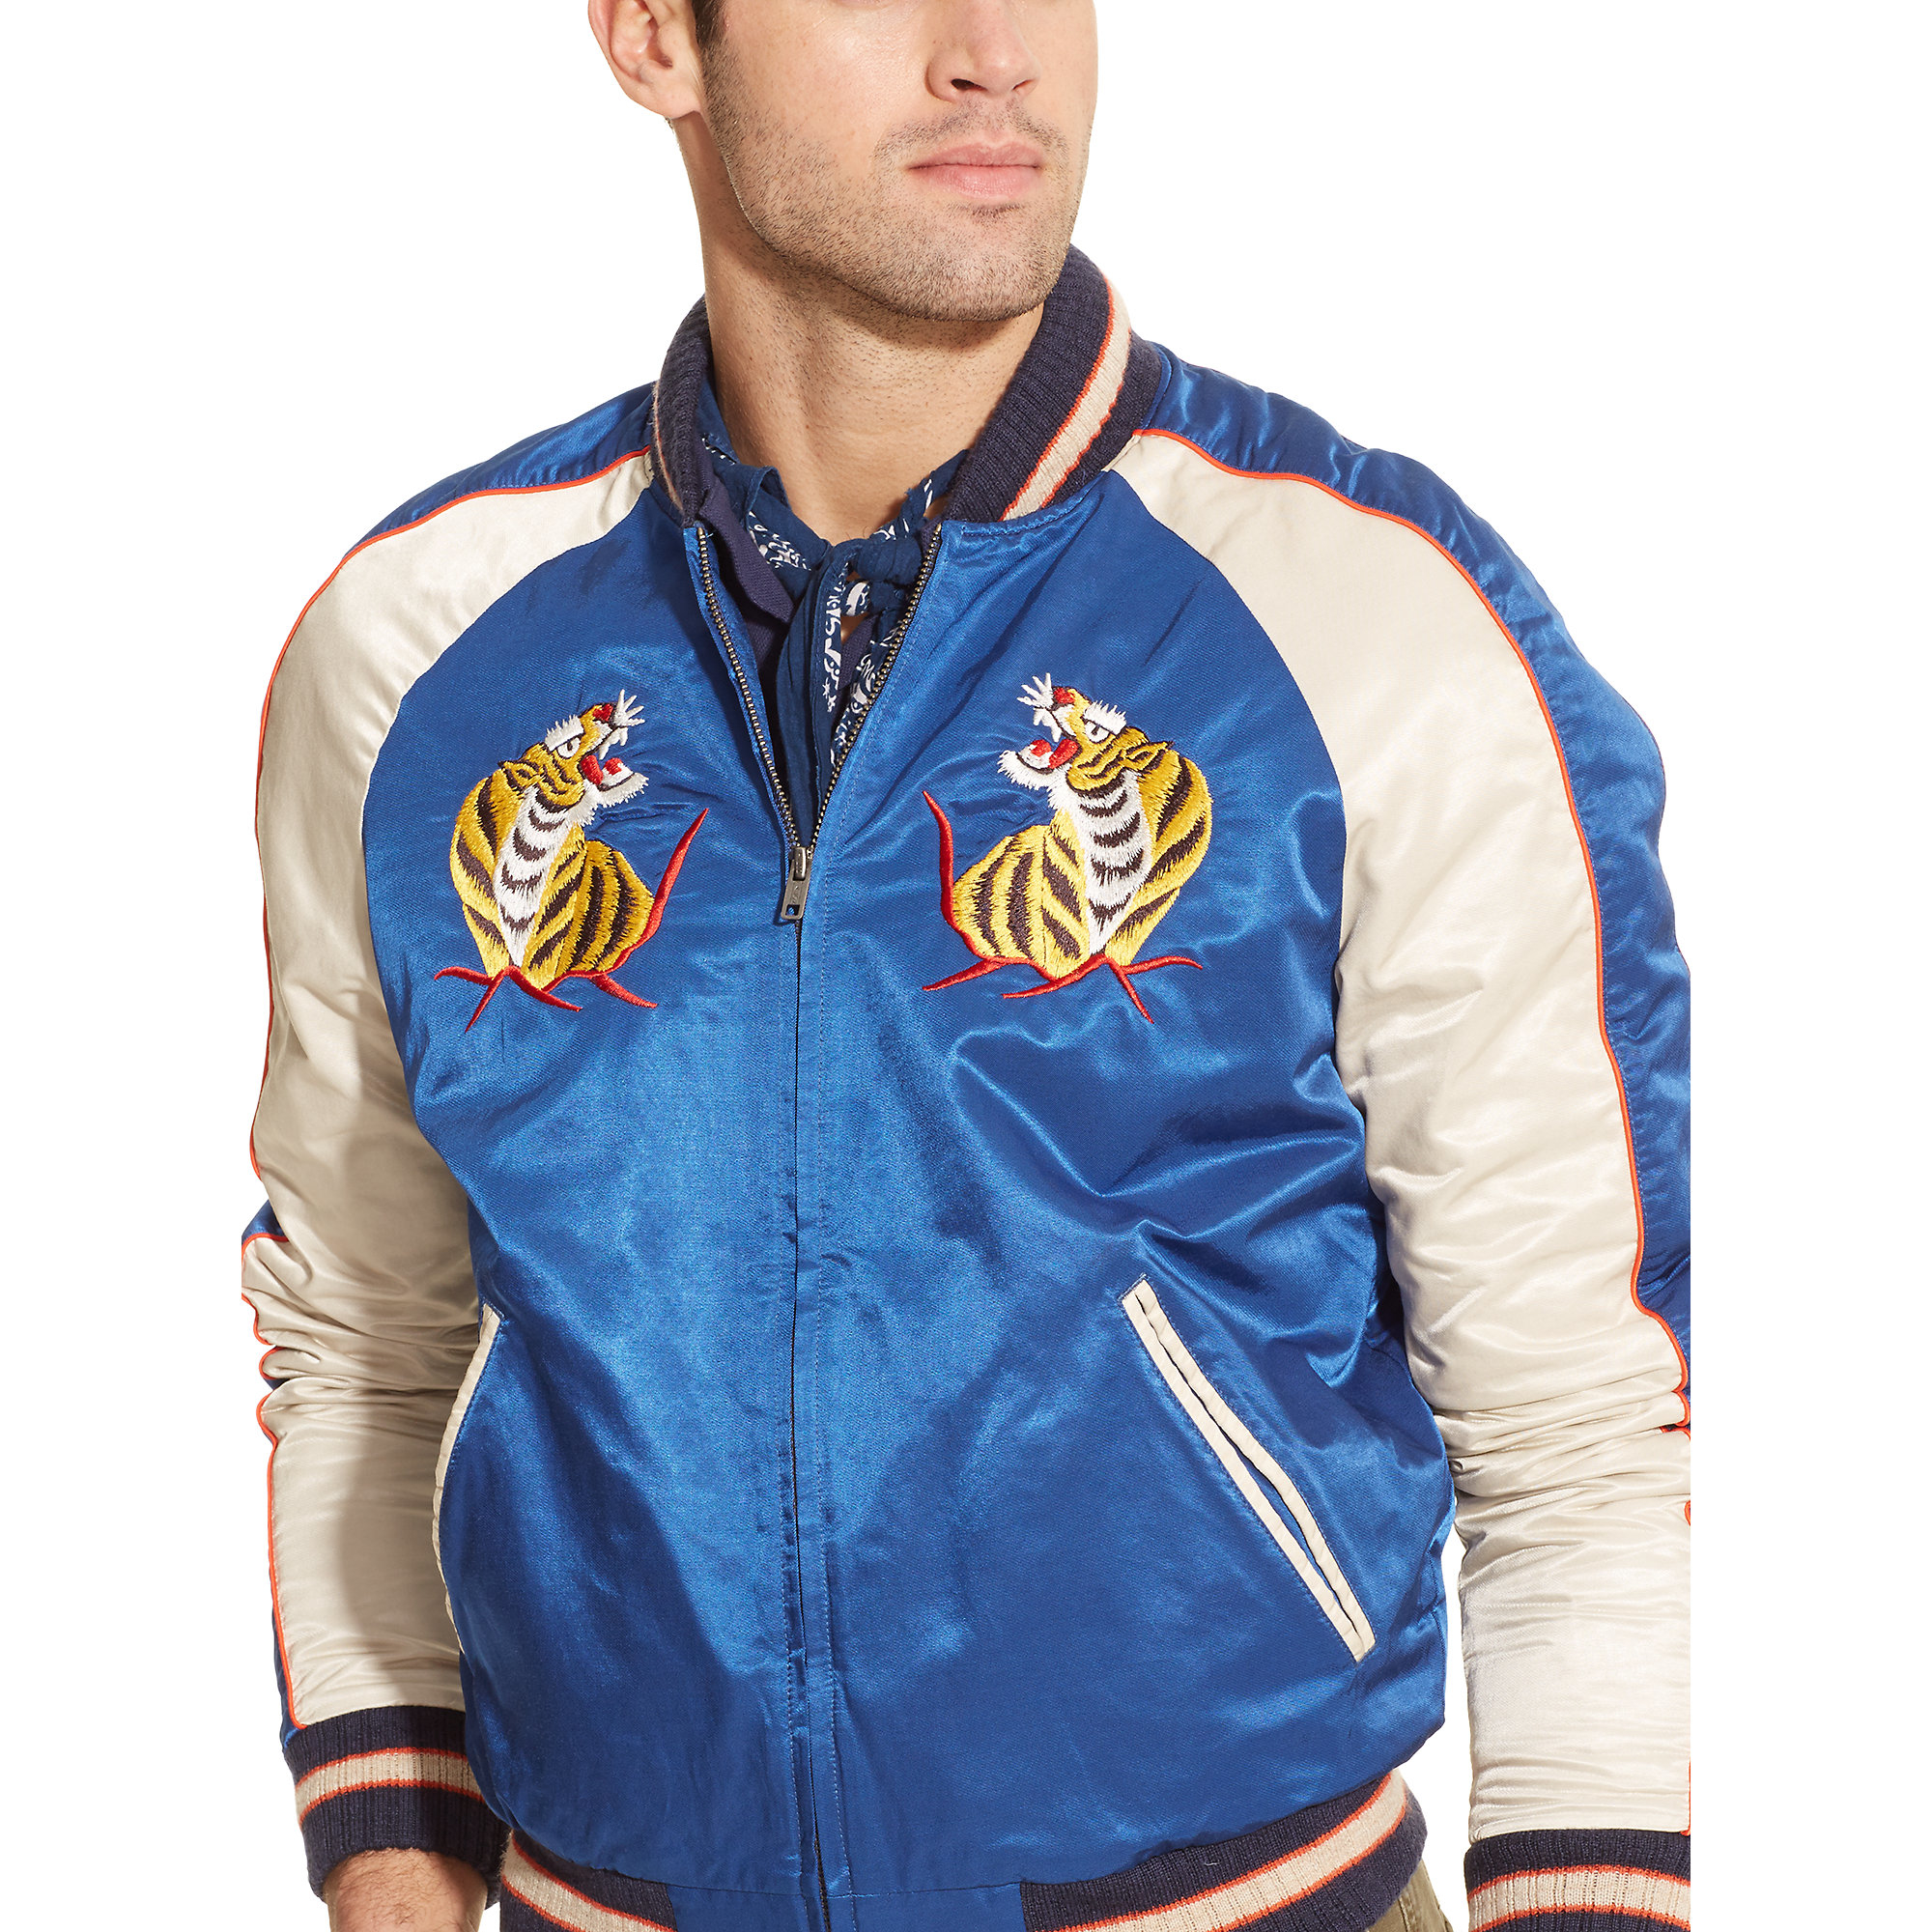 Lyst polo ralph lauren hawaiian tour baseball jacket in for The tour jacket polo shirt